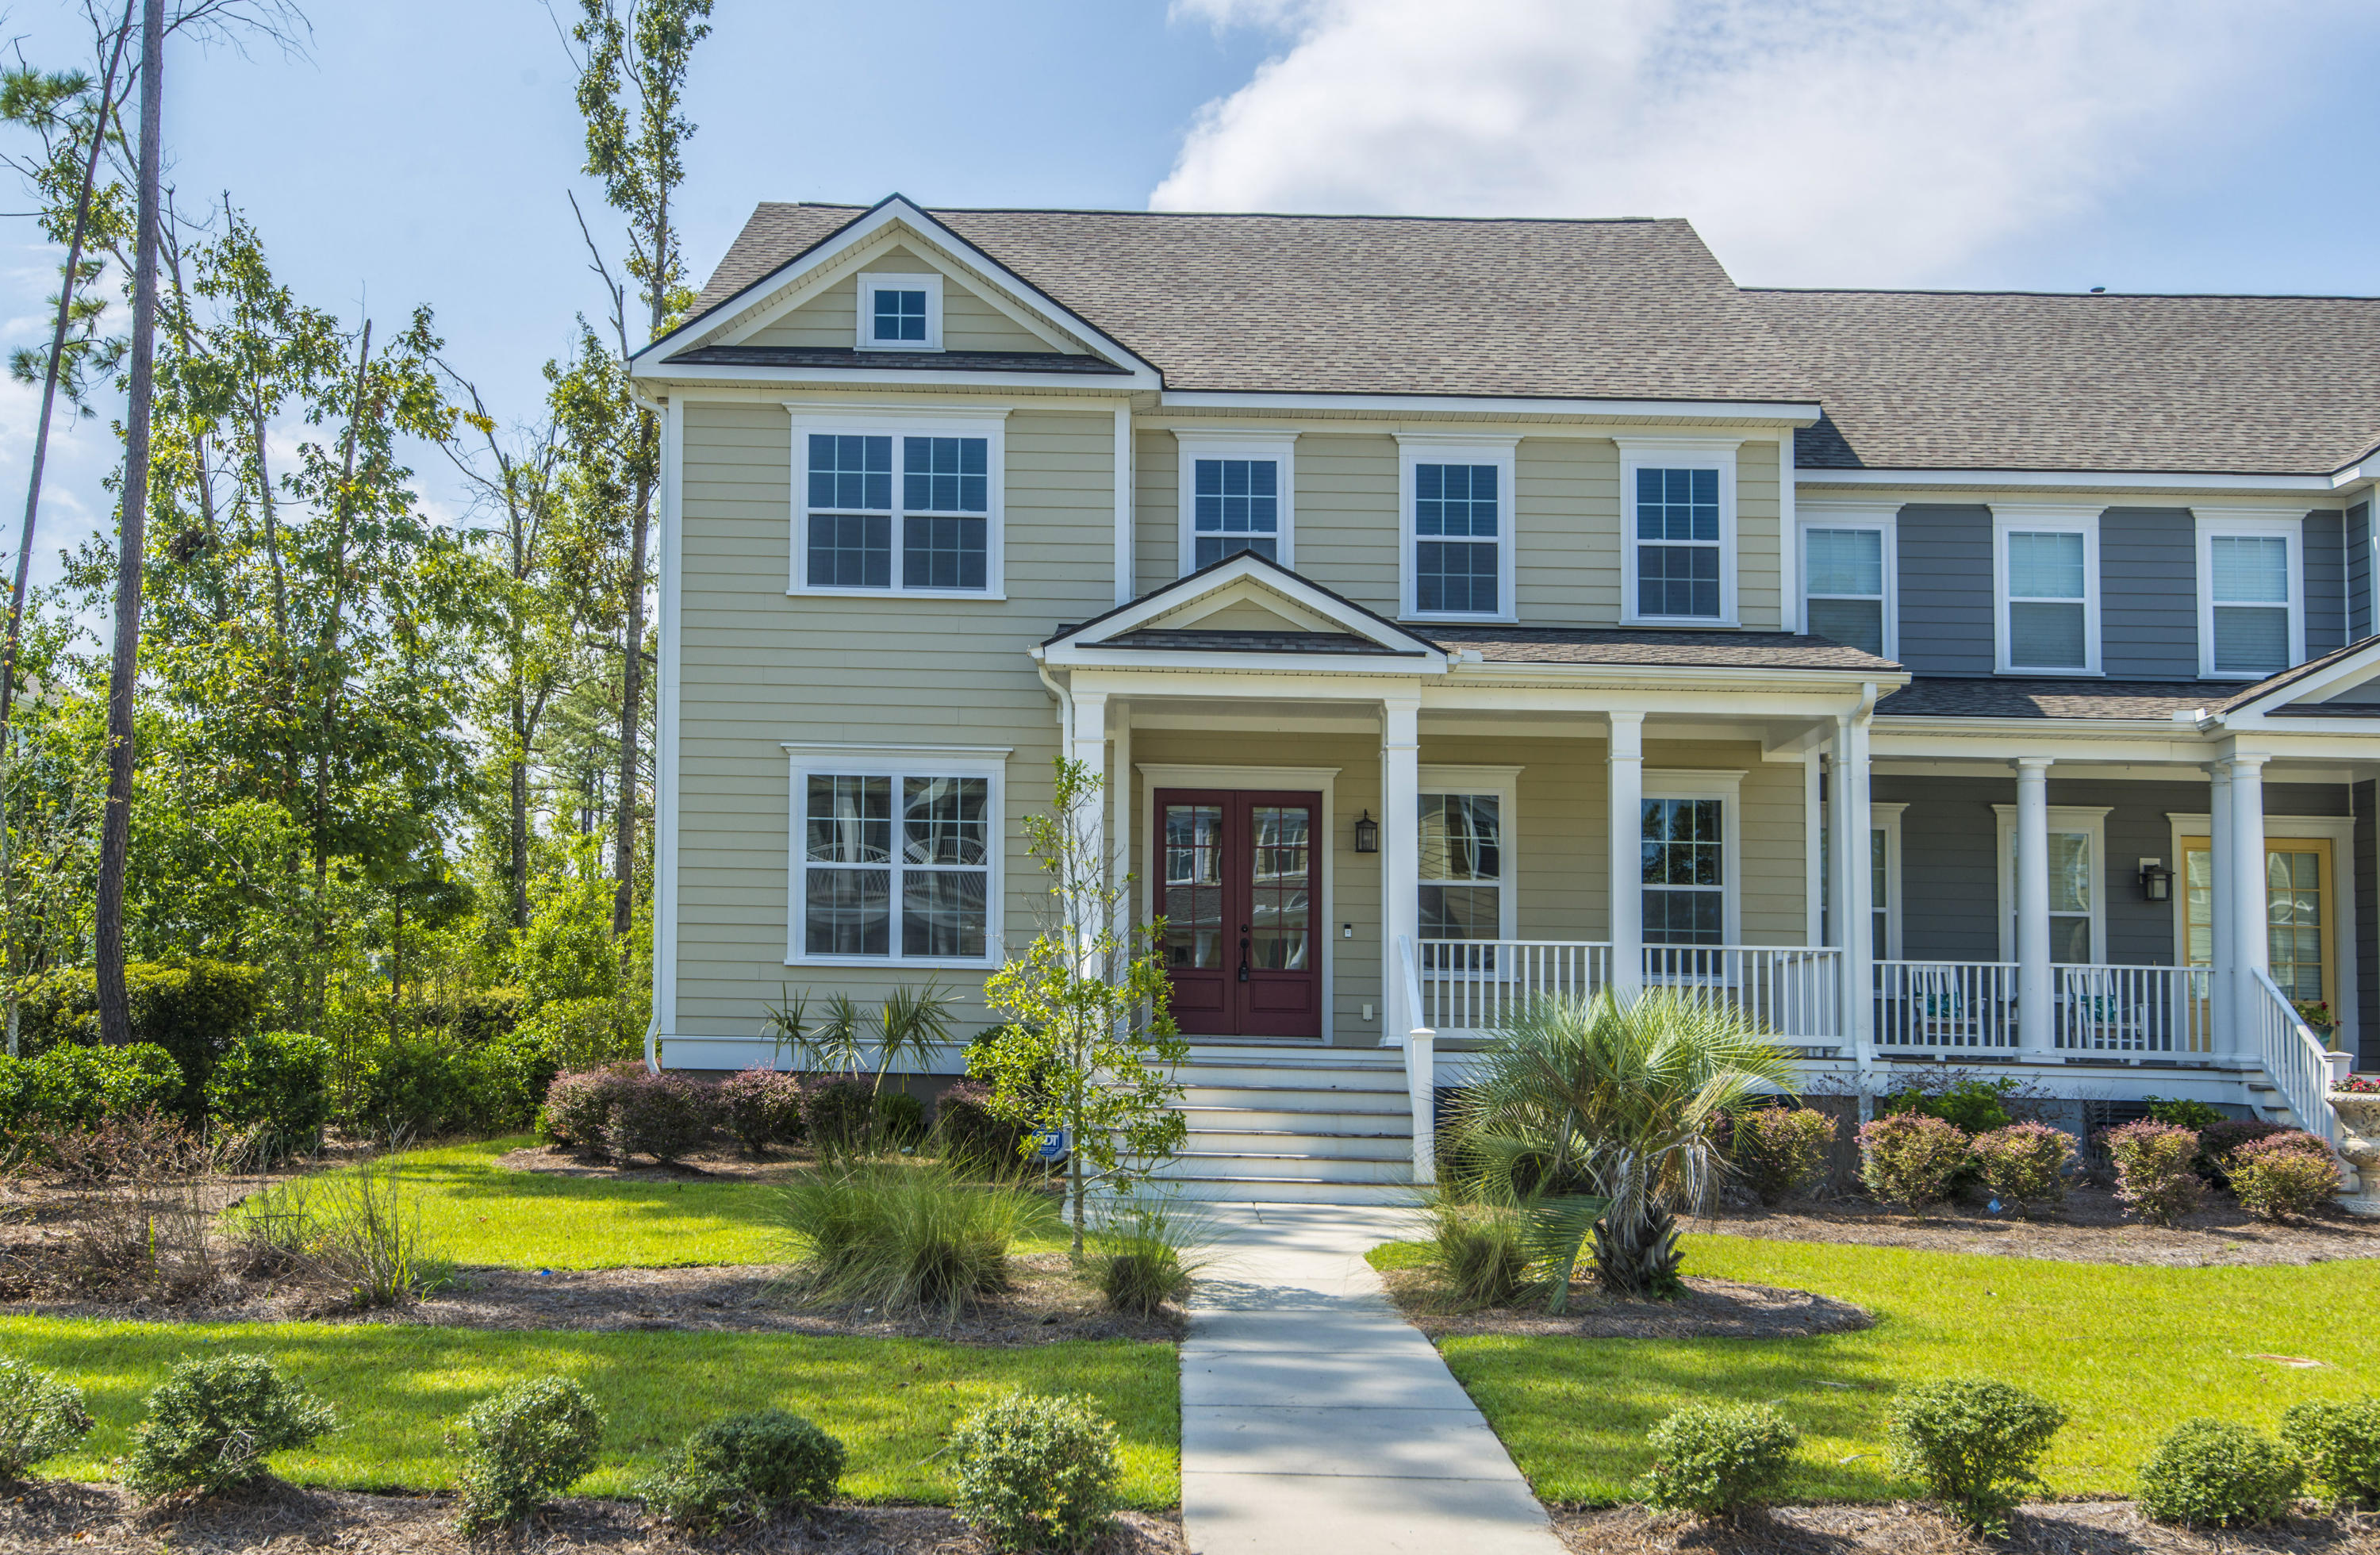 Dunes West Homes For Sale - 3172 Sturbridge, Mount Pleasant, SC - 12